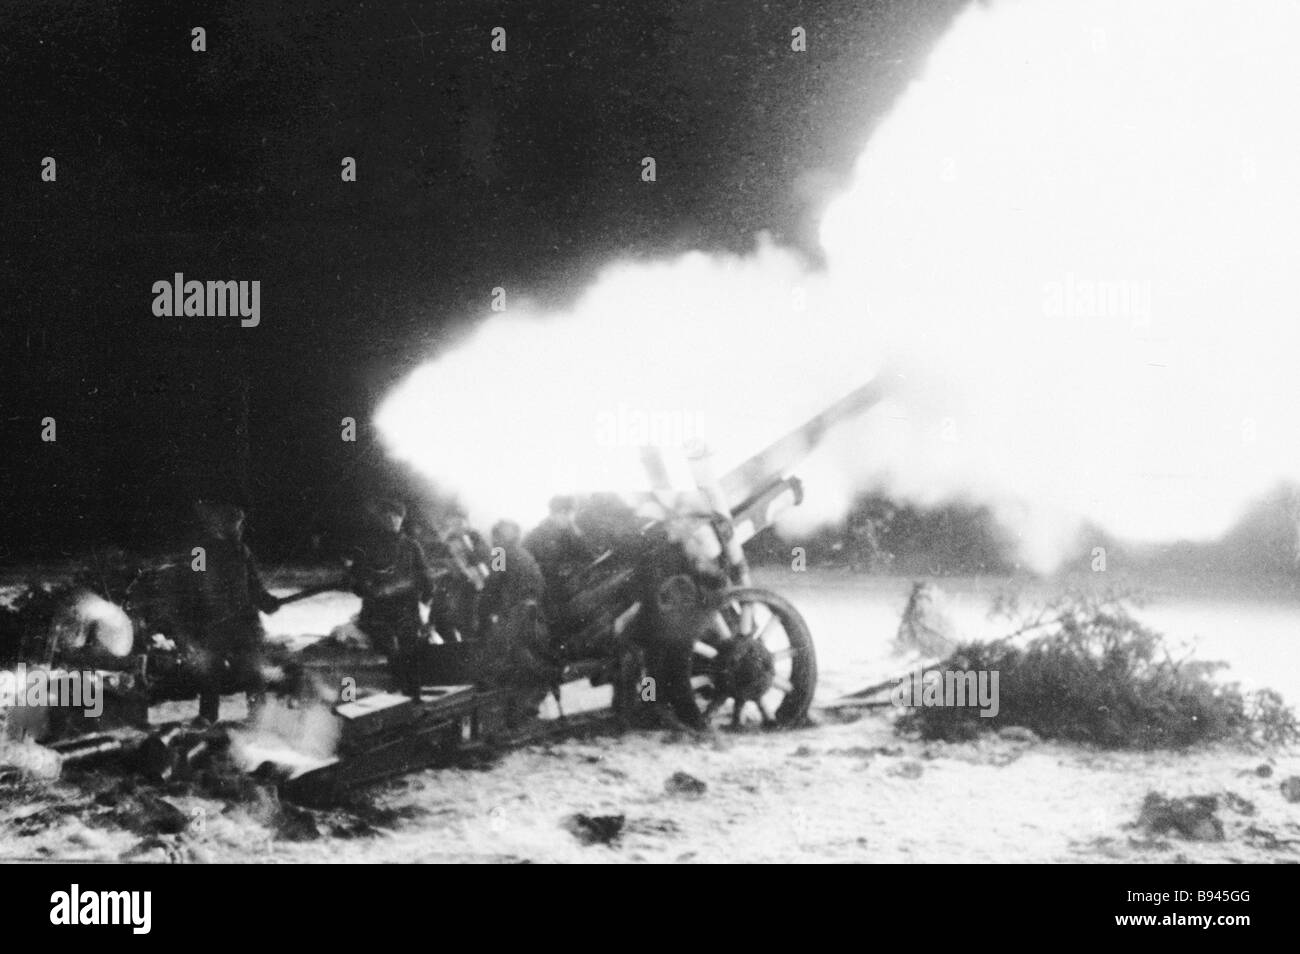 Artillery fire against the enemy - Stock Image